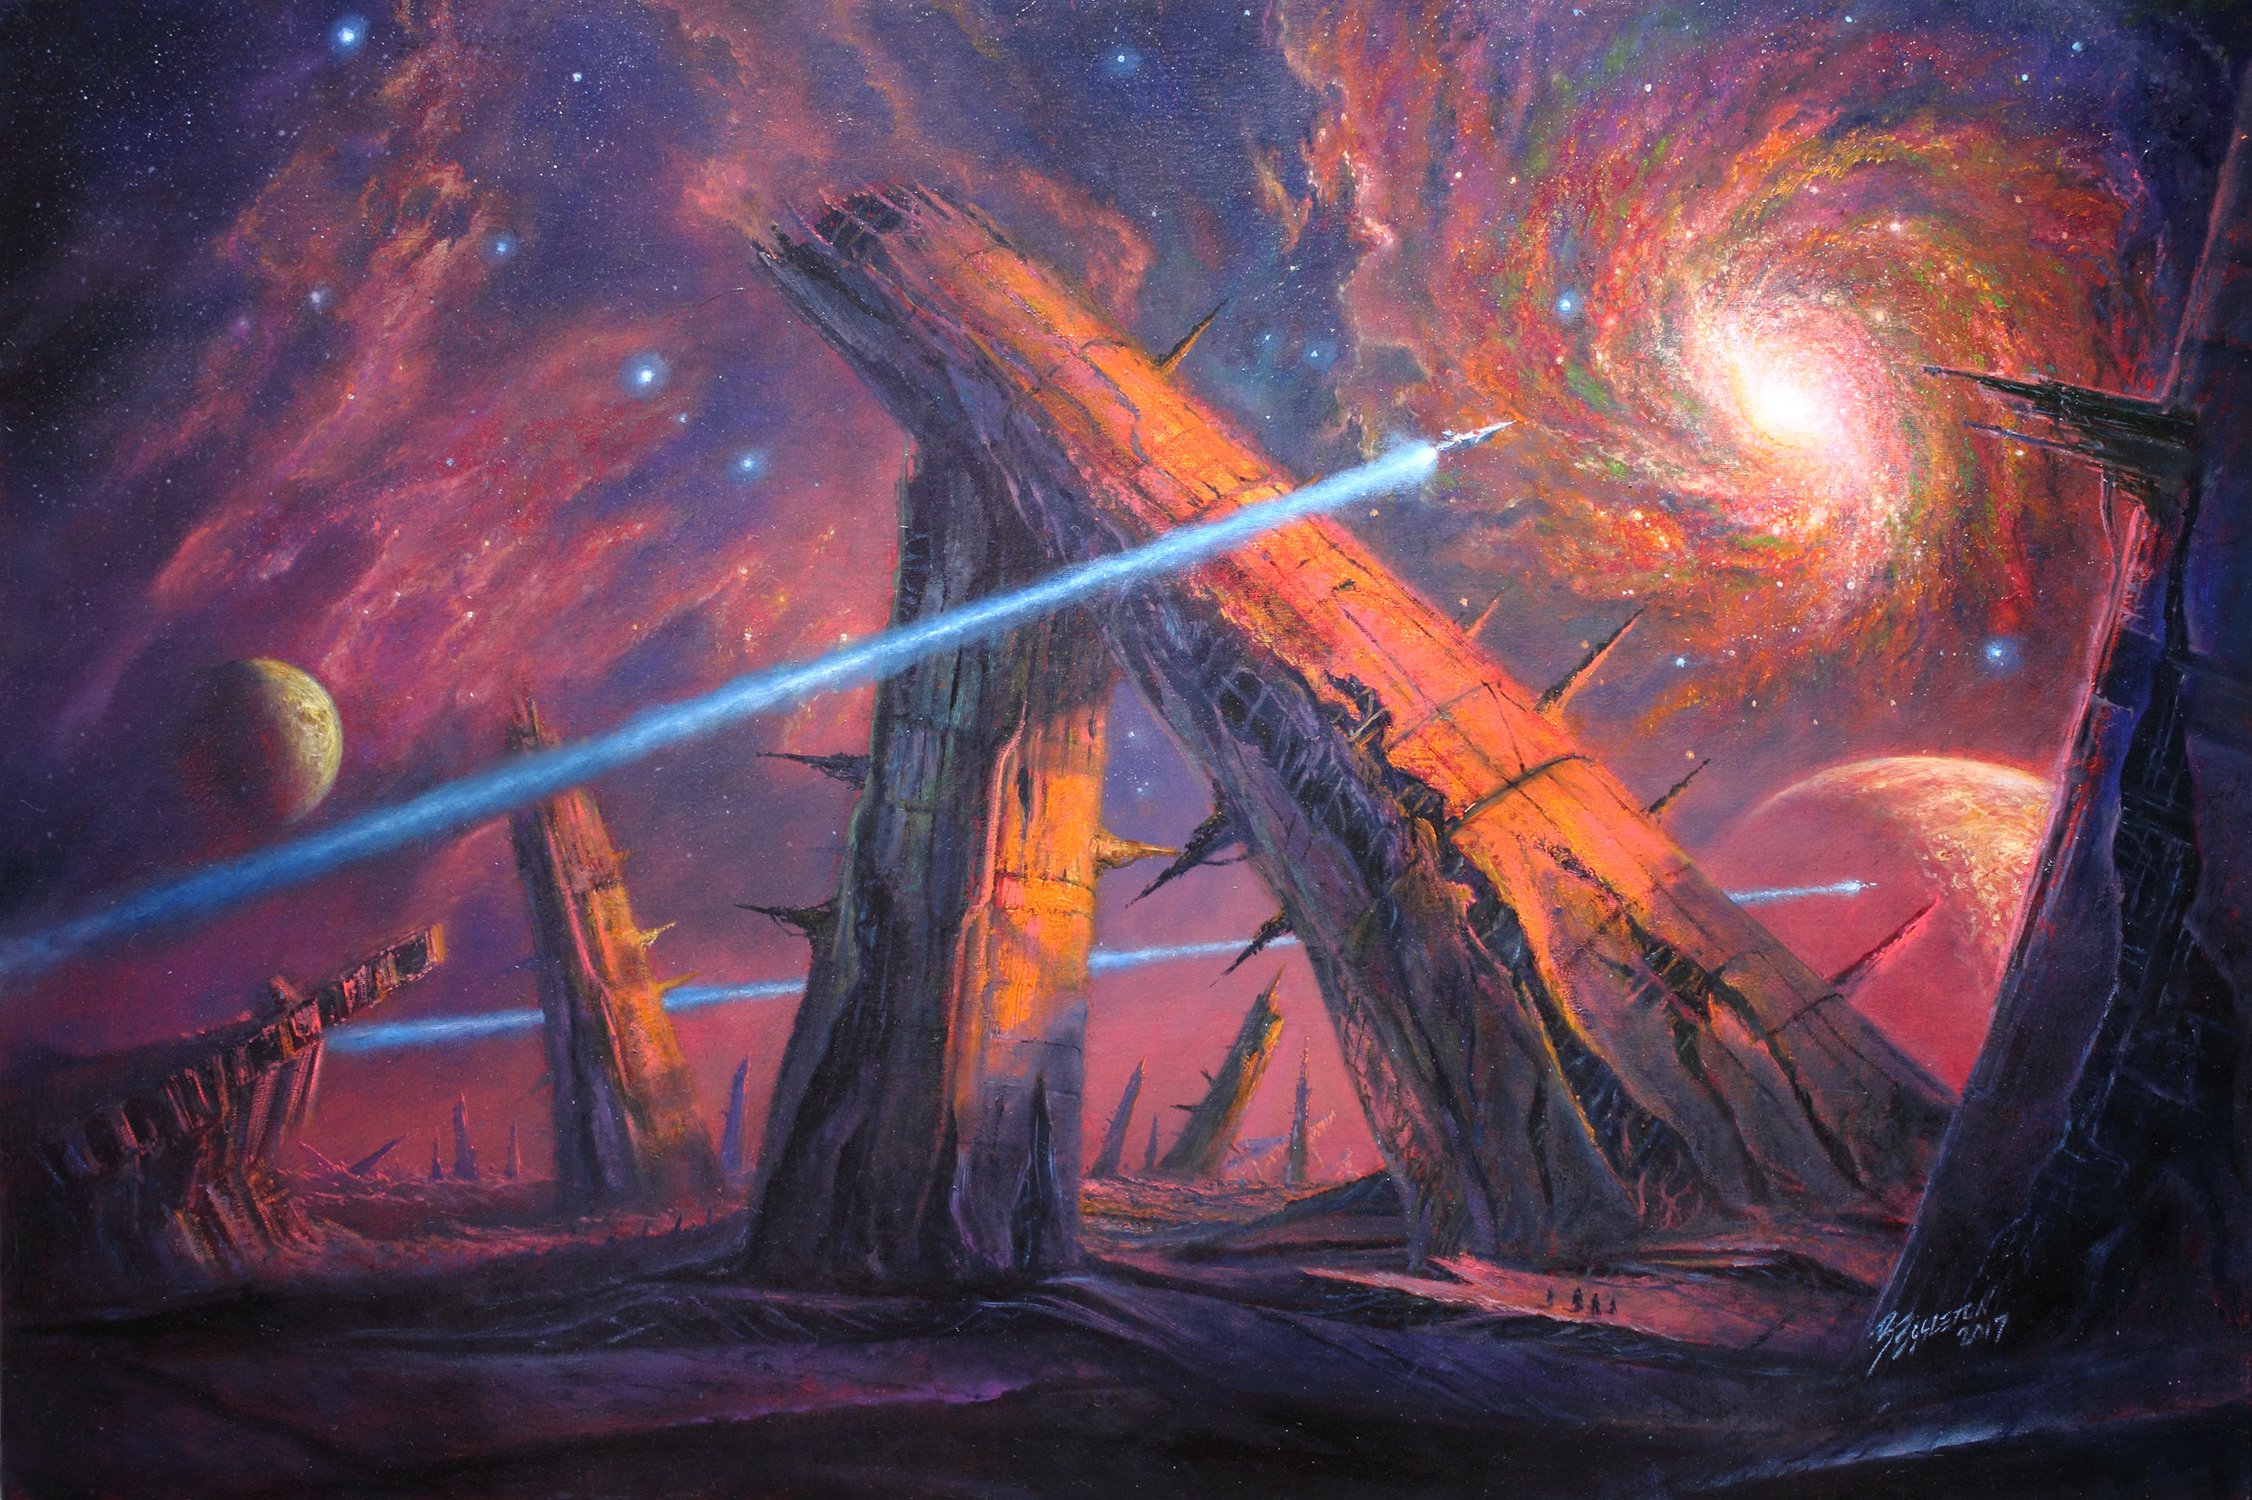 FOUNDATION FUTURE Artwork by Bob Eggleton